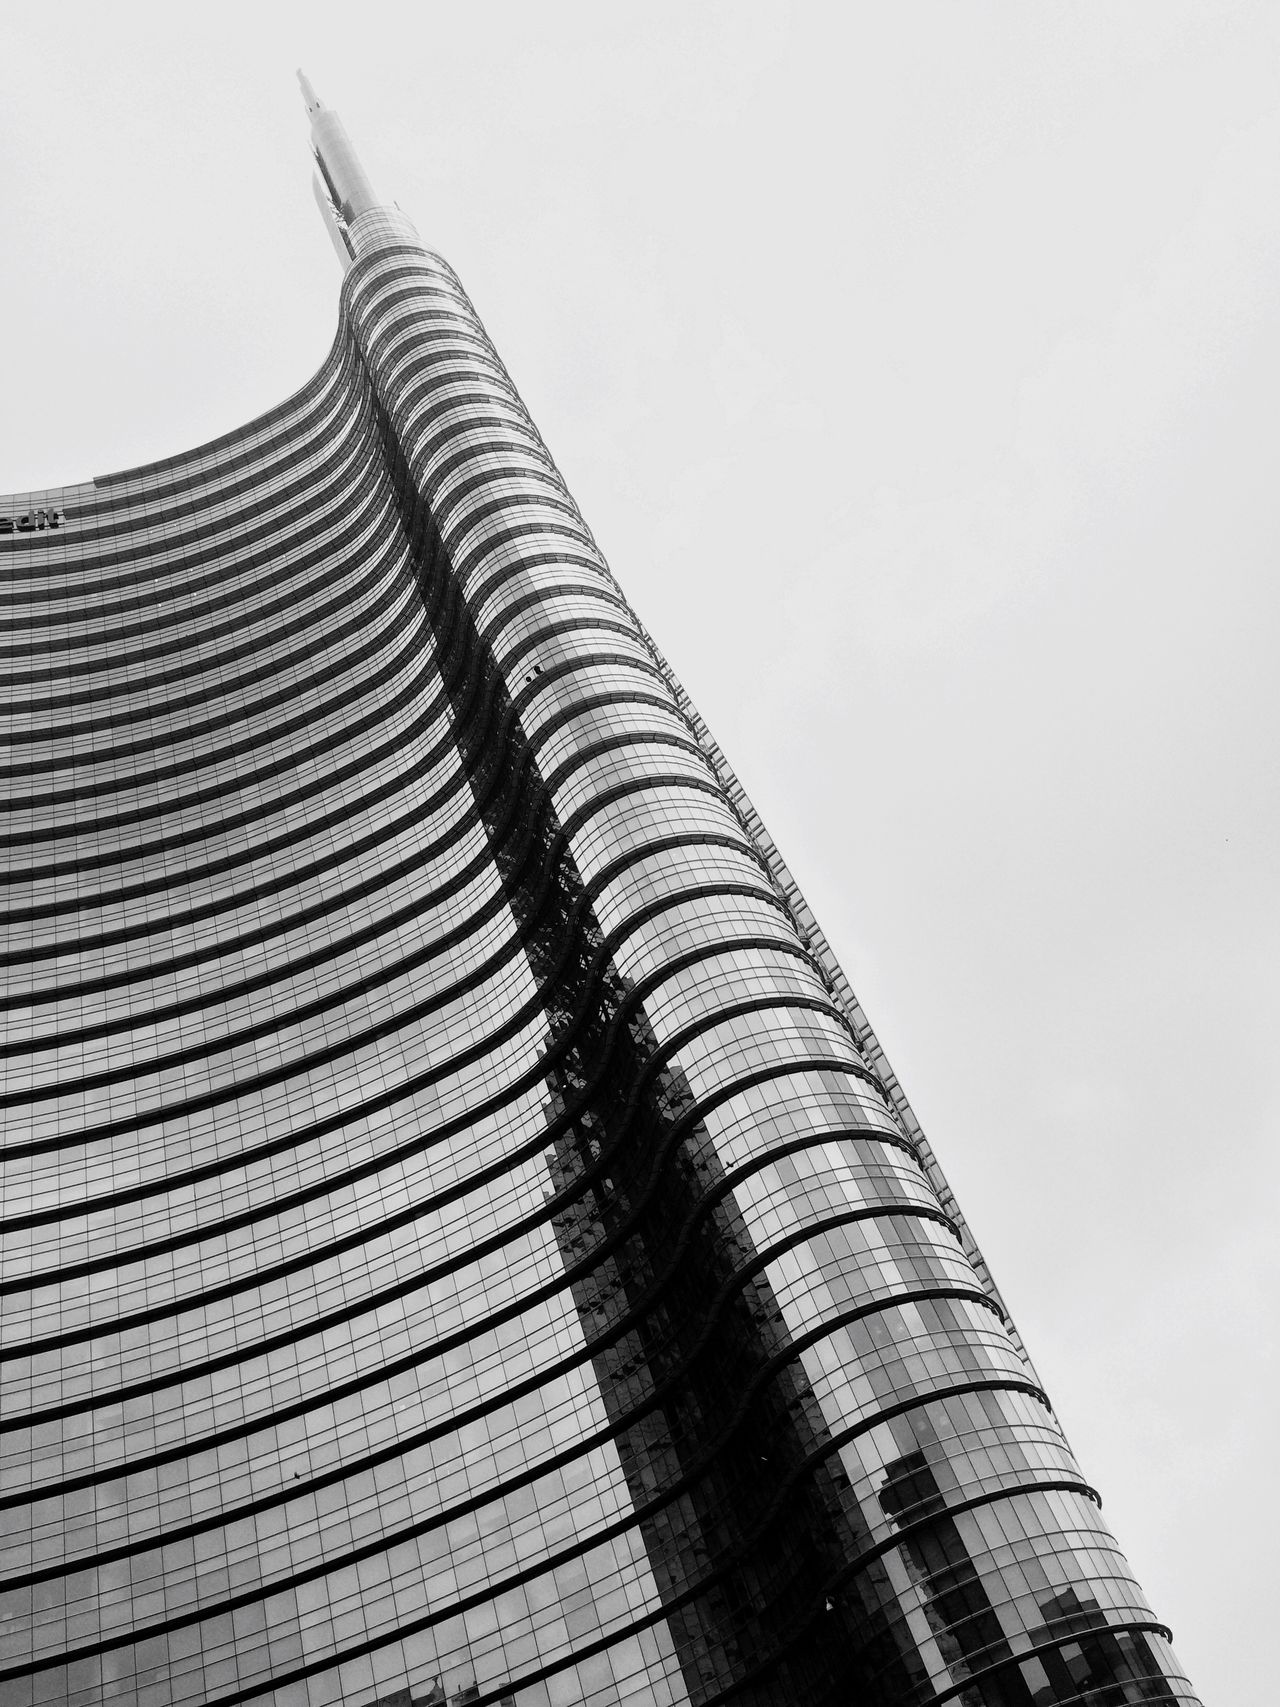 Architecture Built Structure Low Angle View Building Exterior Travel Destinations Sky No People Day Outdoors Modern Clear Sky City Blackandwhite Black & White Blackandwhite Photography Black&white Black And White Black And White Photography Milano Milan Unicredit Tower Porta Nuova Glass Windows Reflection